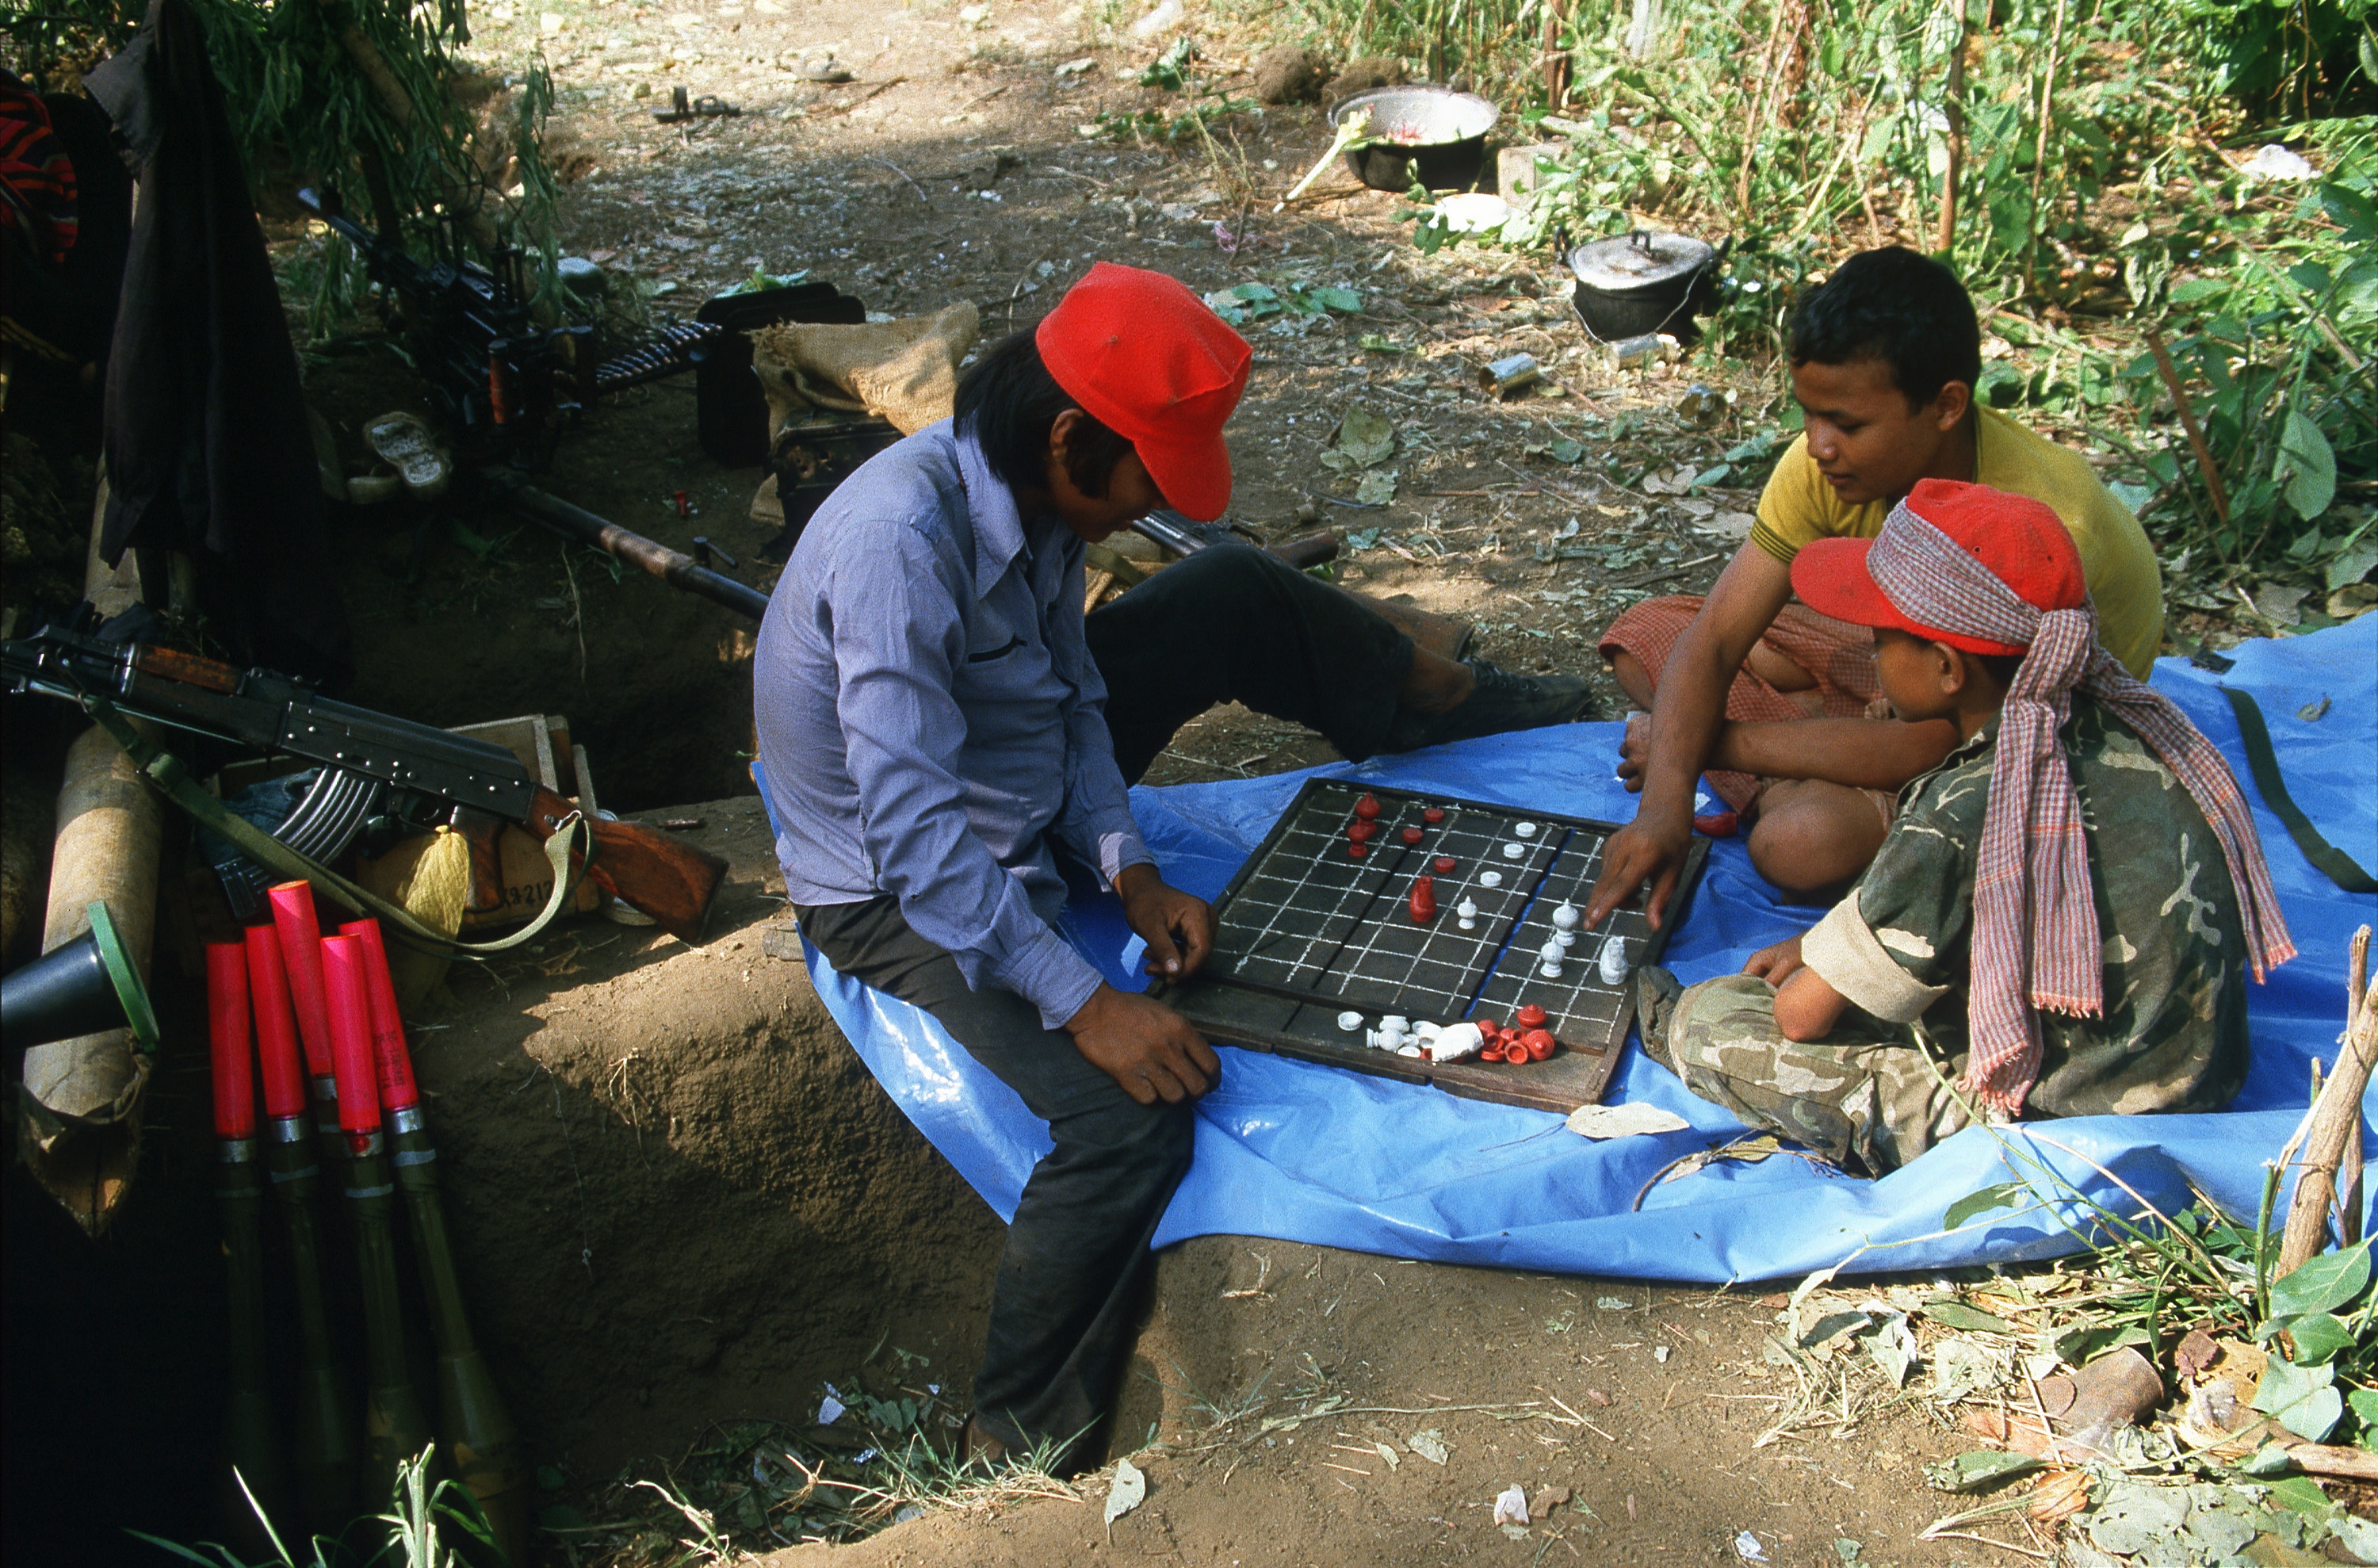 Three child soldiers play chess on a blue tarp outside